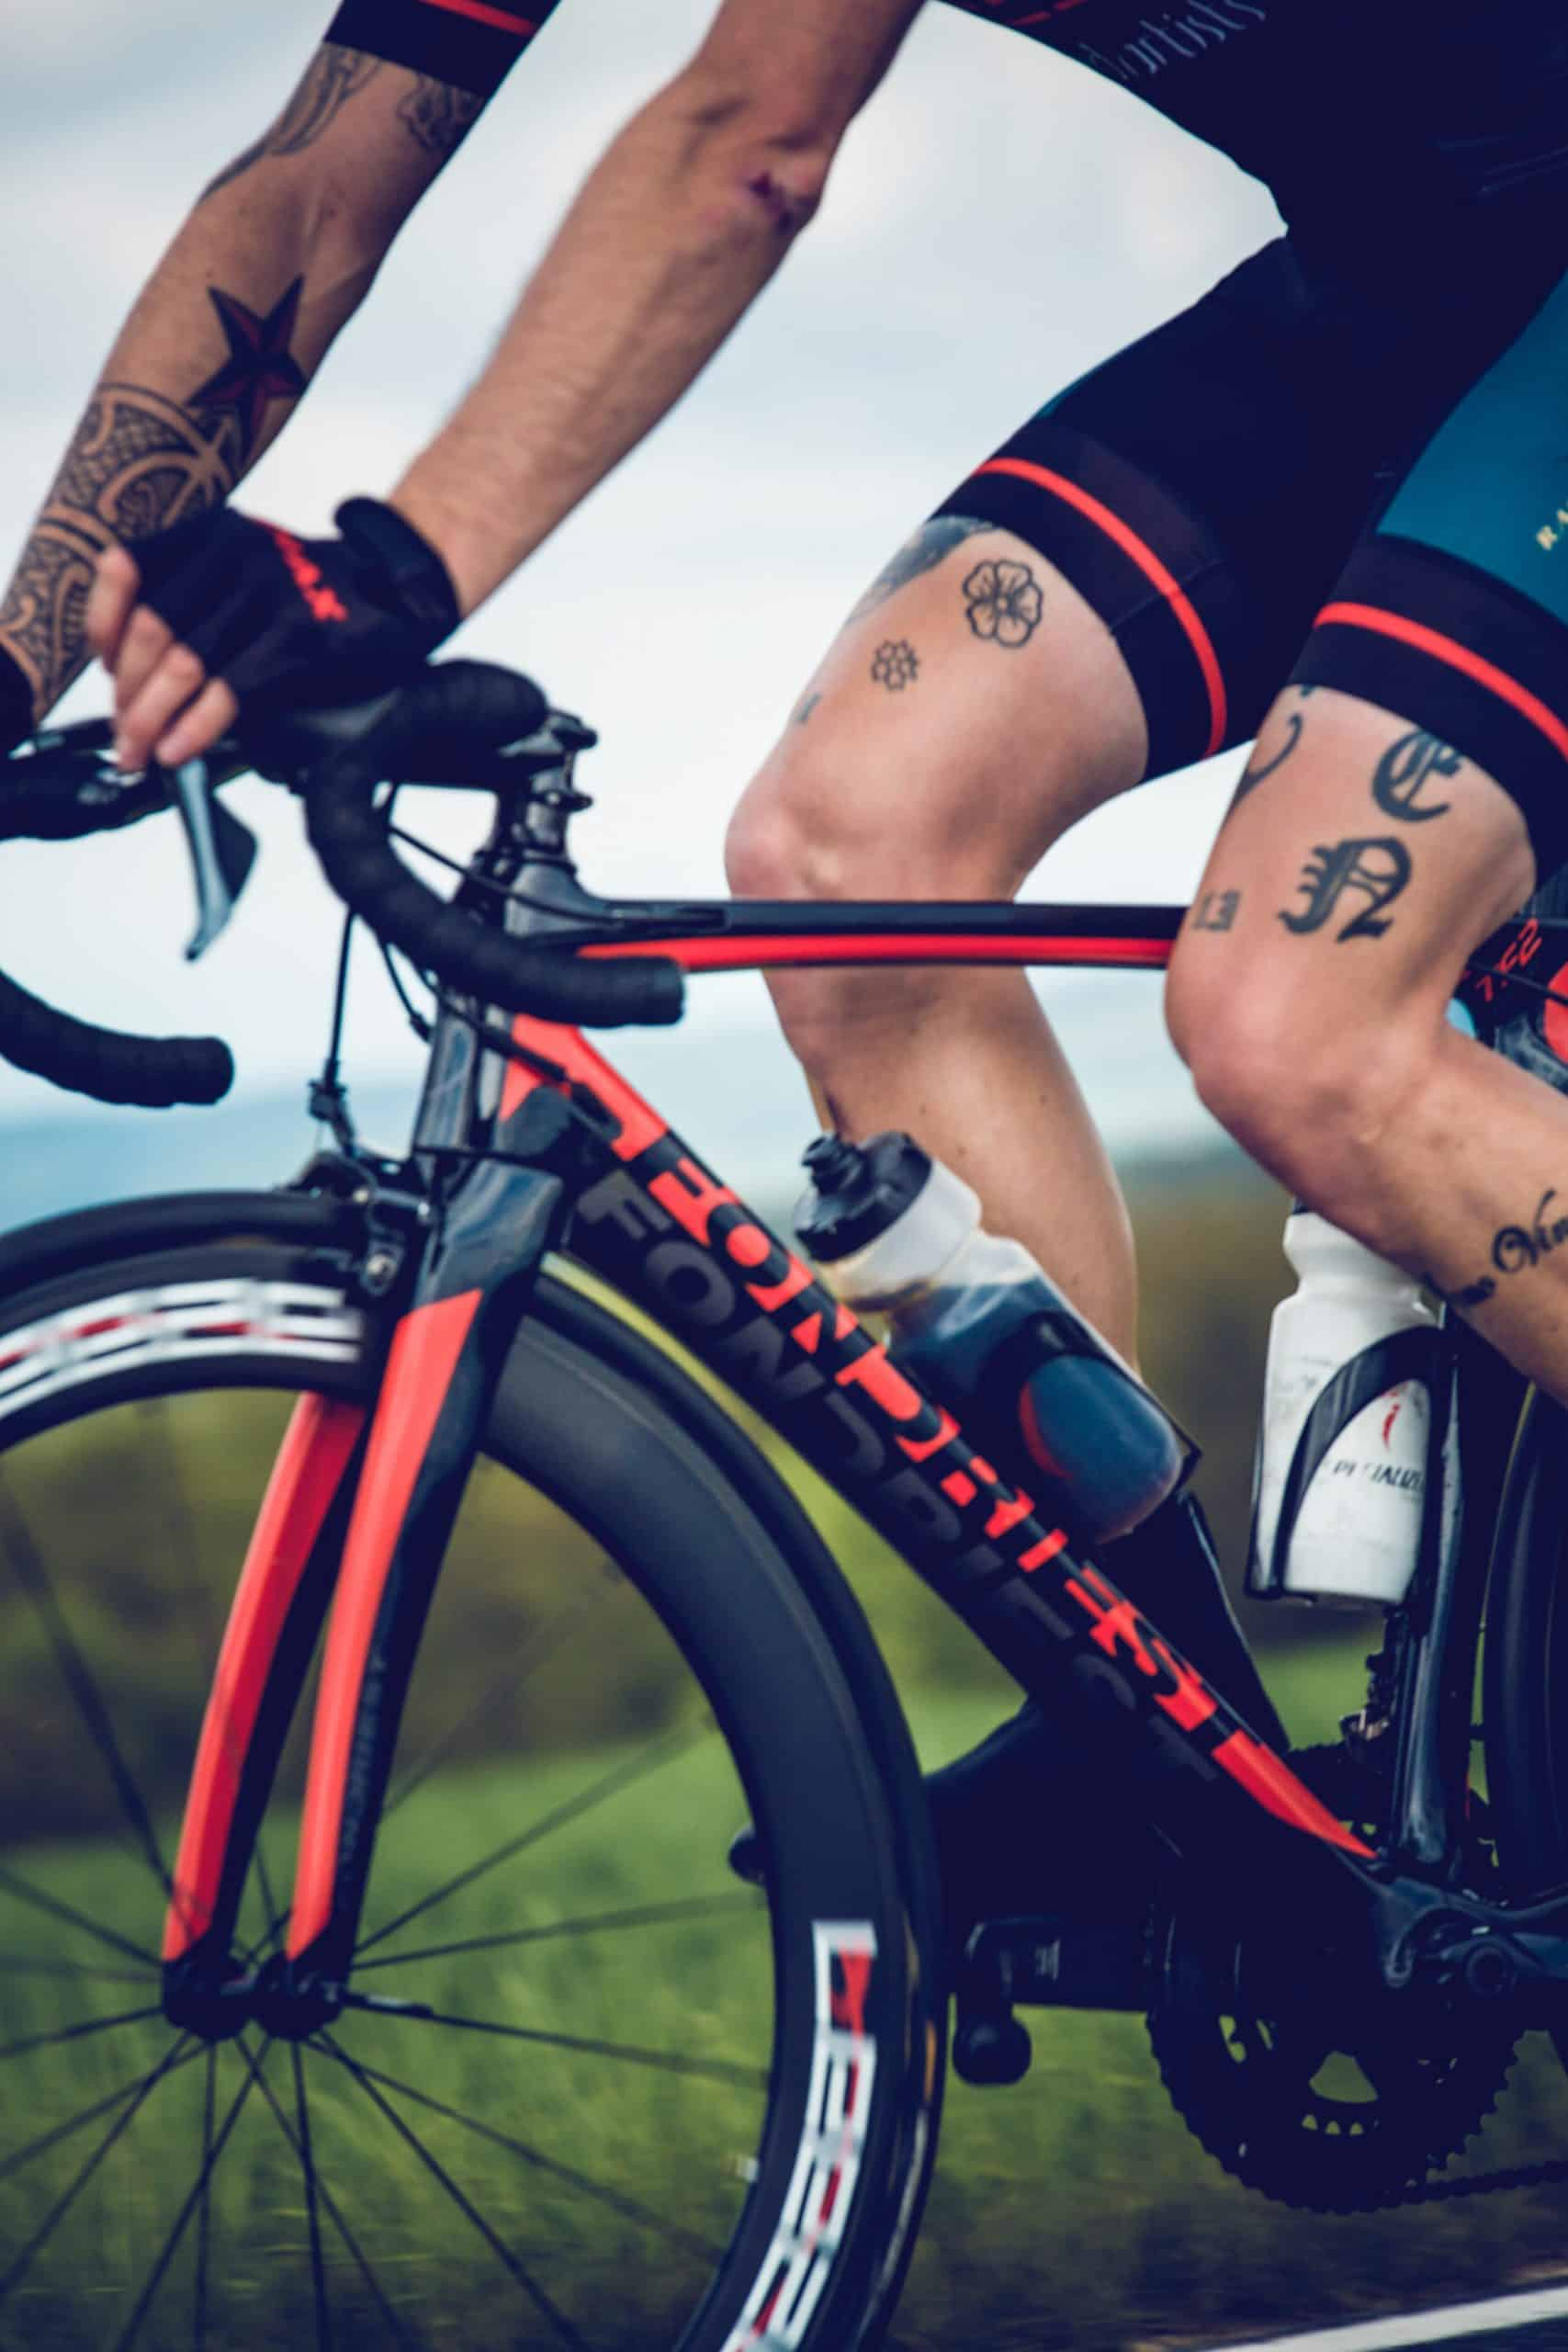 frame is a big consideration when choosing a road bike for under 500